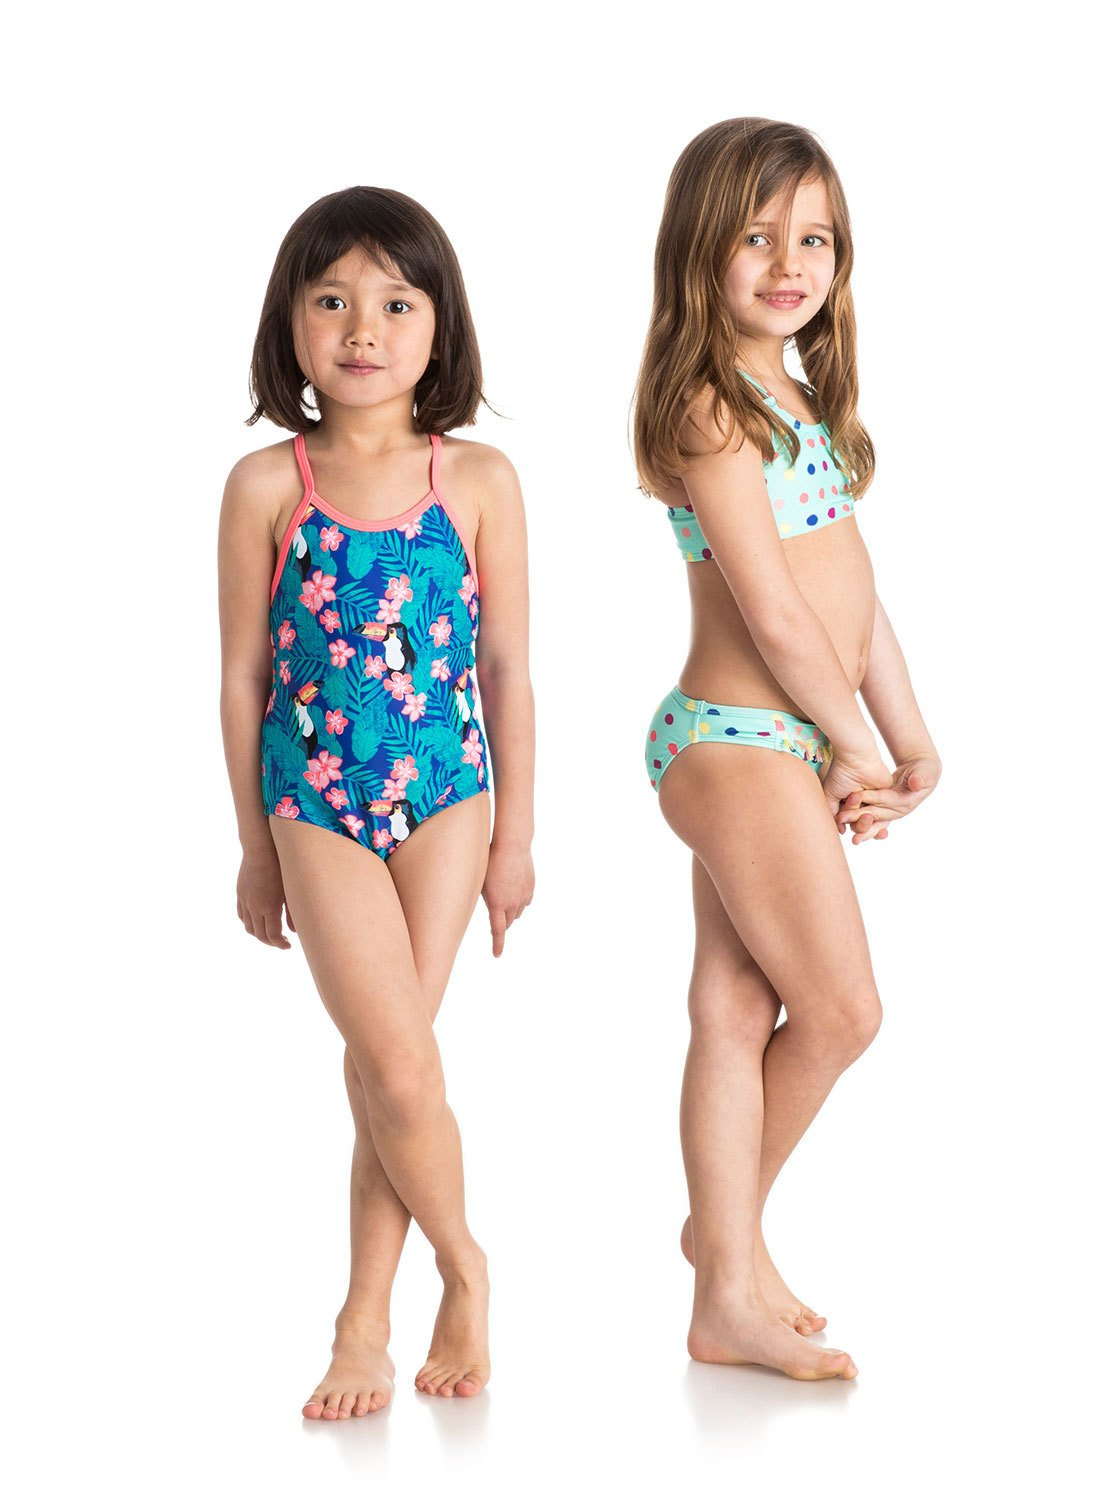 piece girls One swimsuits